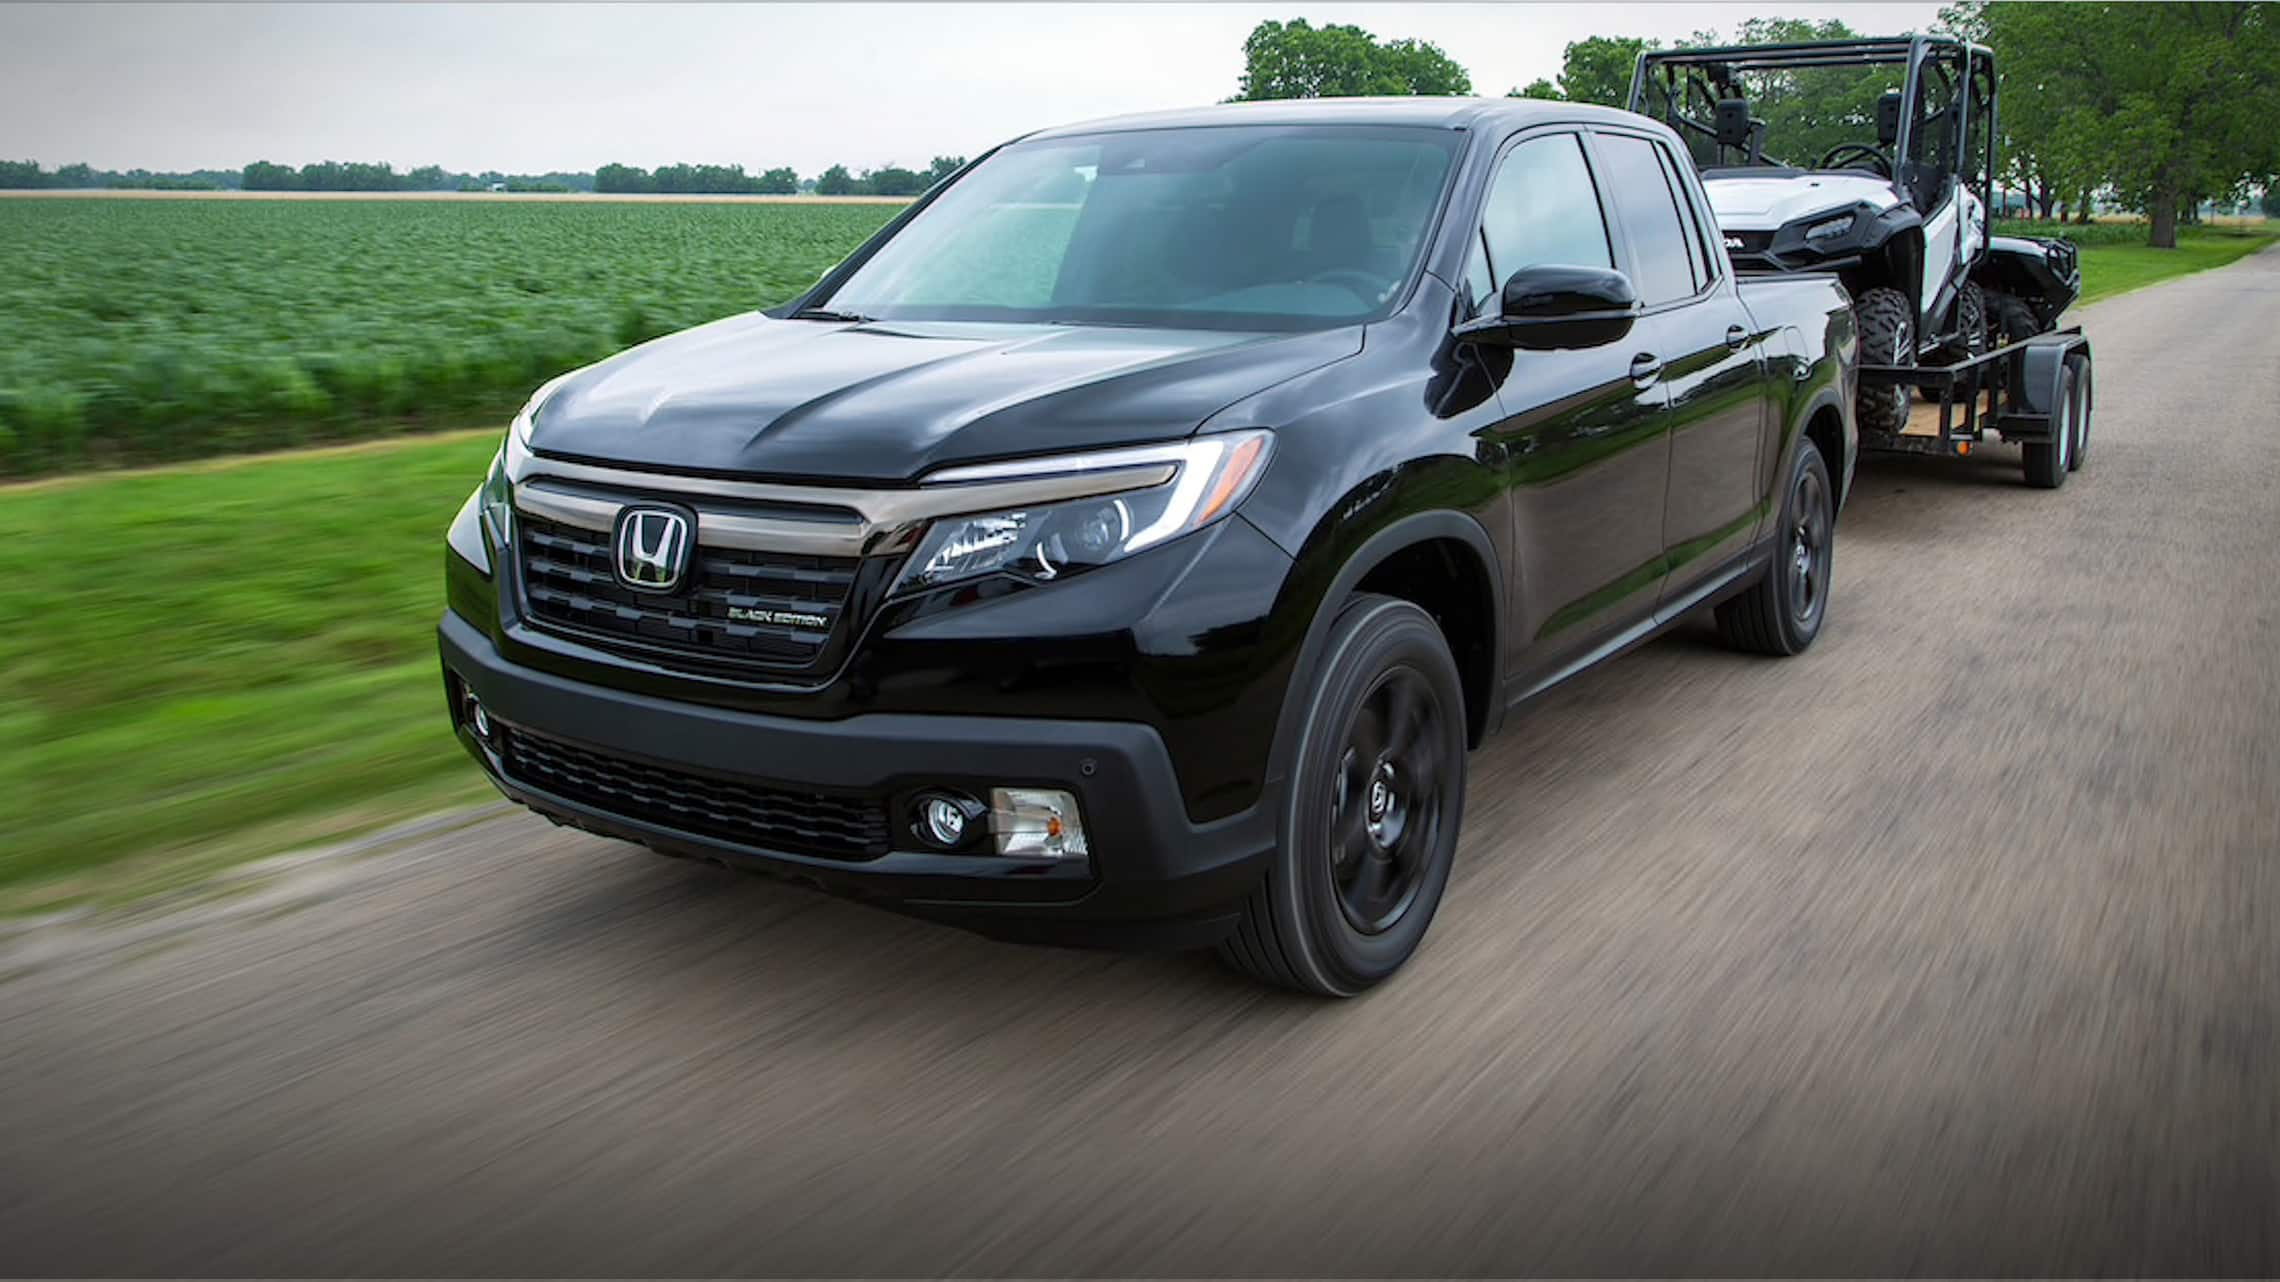 Rear view of the 2020 Honda Ridgeline RTL-E in Lunar Silver Metallic driving through dirt road, storing two dirt bikes in truck bed.